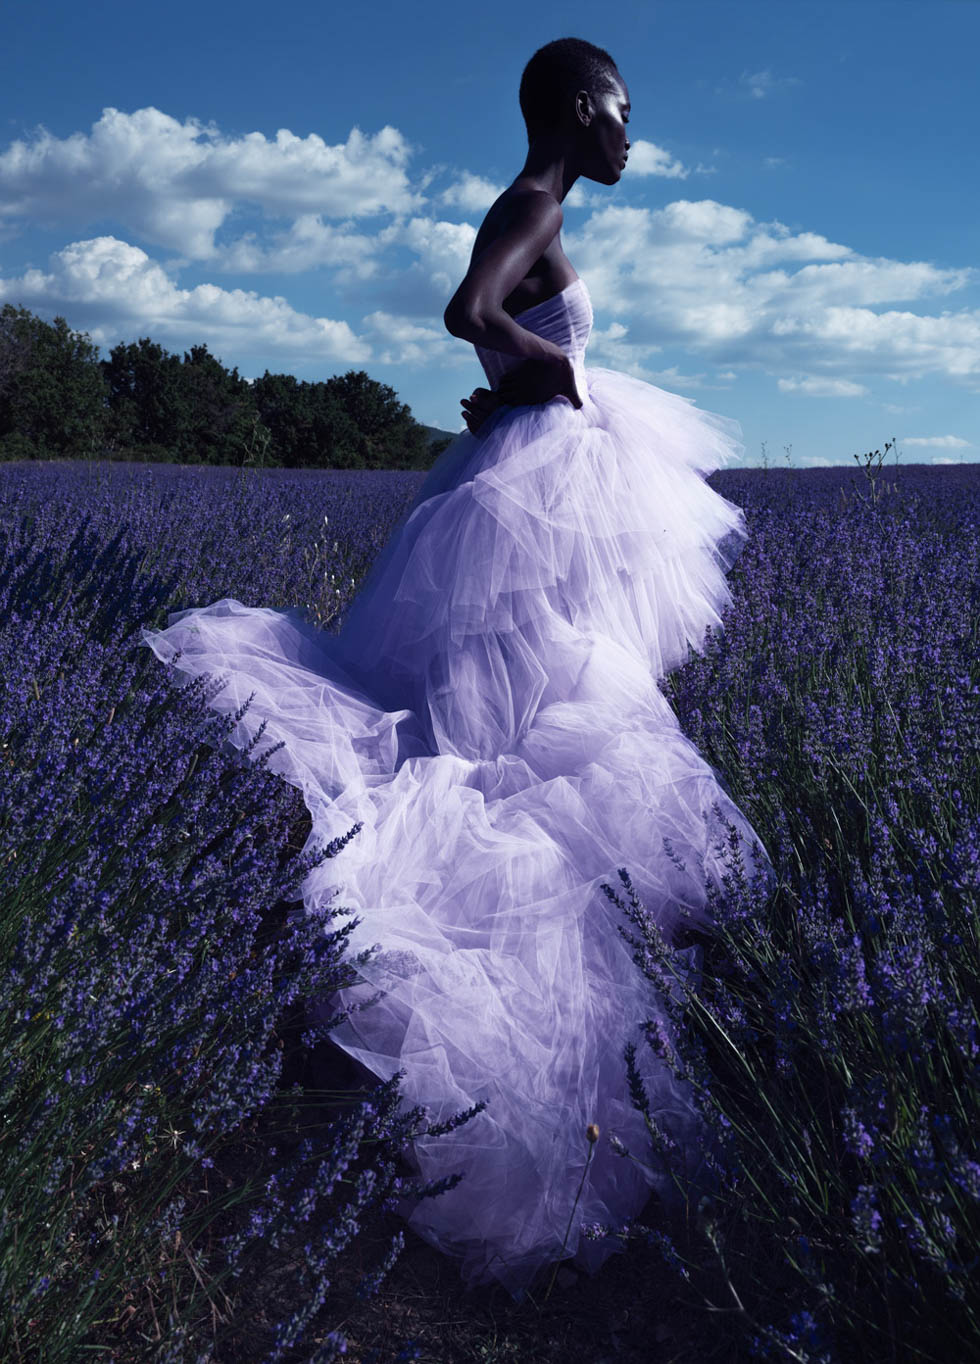 The countryside is the new black. Shot in the lavender fields of Avignon. This editorial for Elle needed to show the new freedom we were facing while showing the color and garment trends of the new season. Photography by Elena Iv-Skaya.